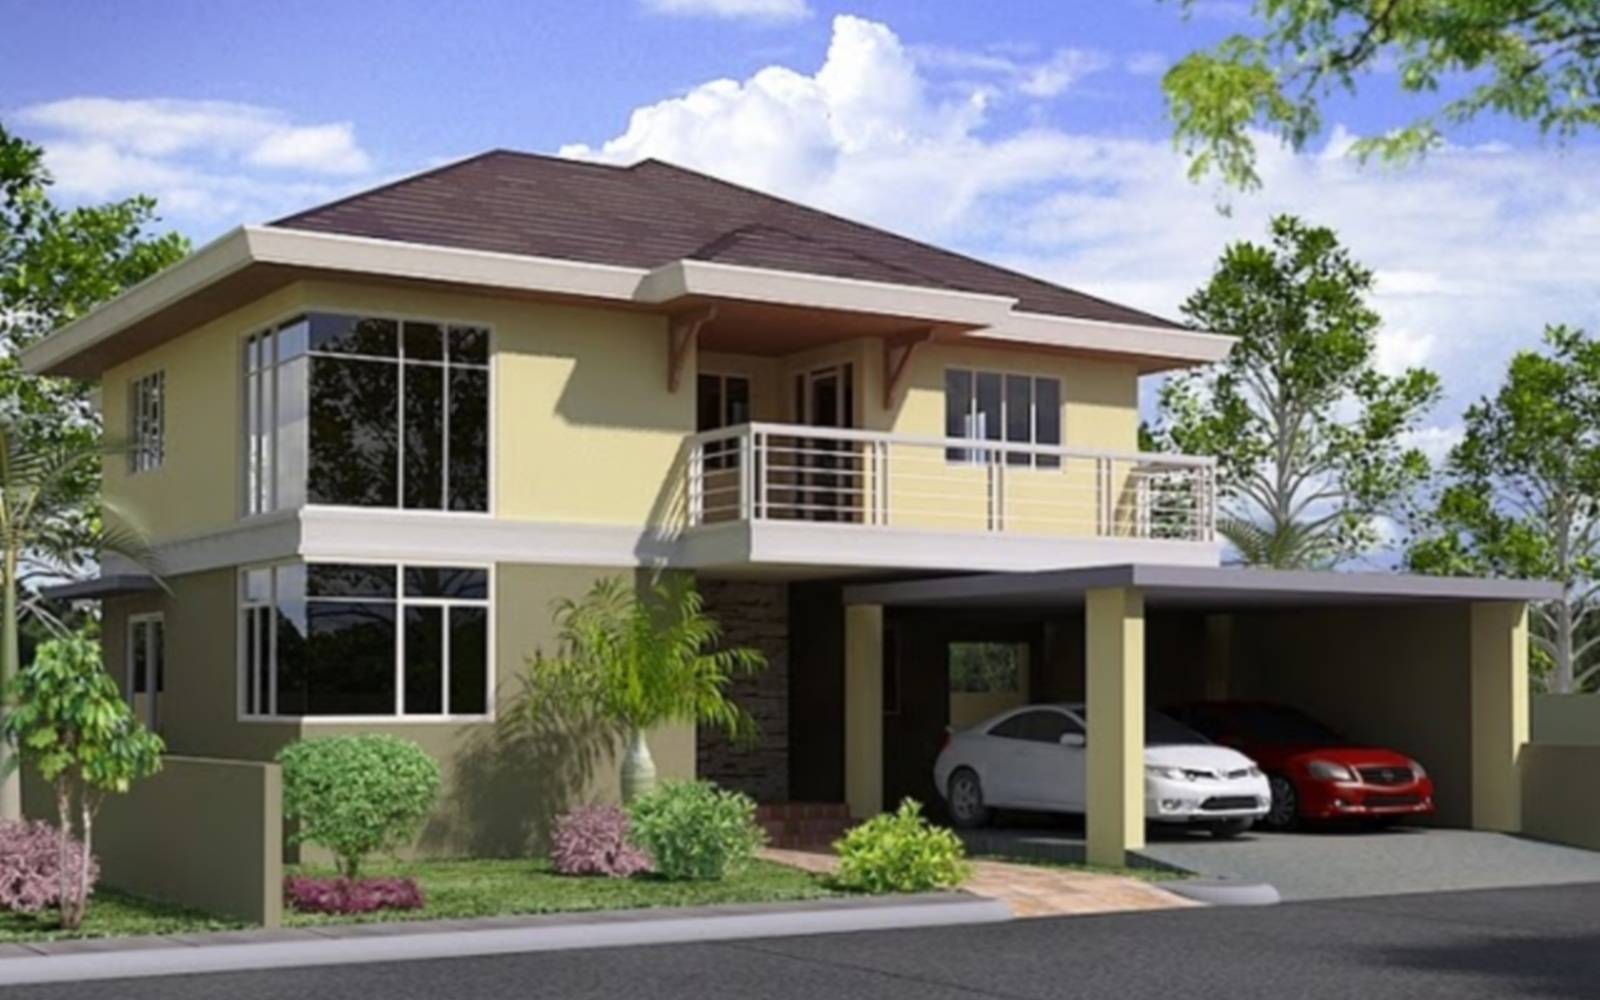 Kk two storey house plan philippines photoshop hd for Double story house design